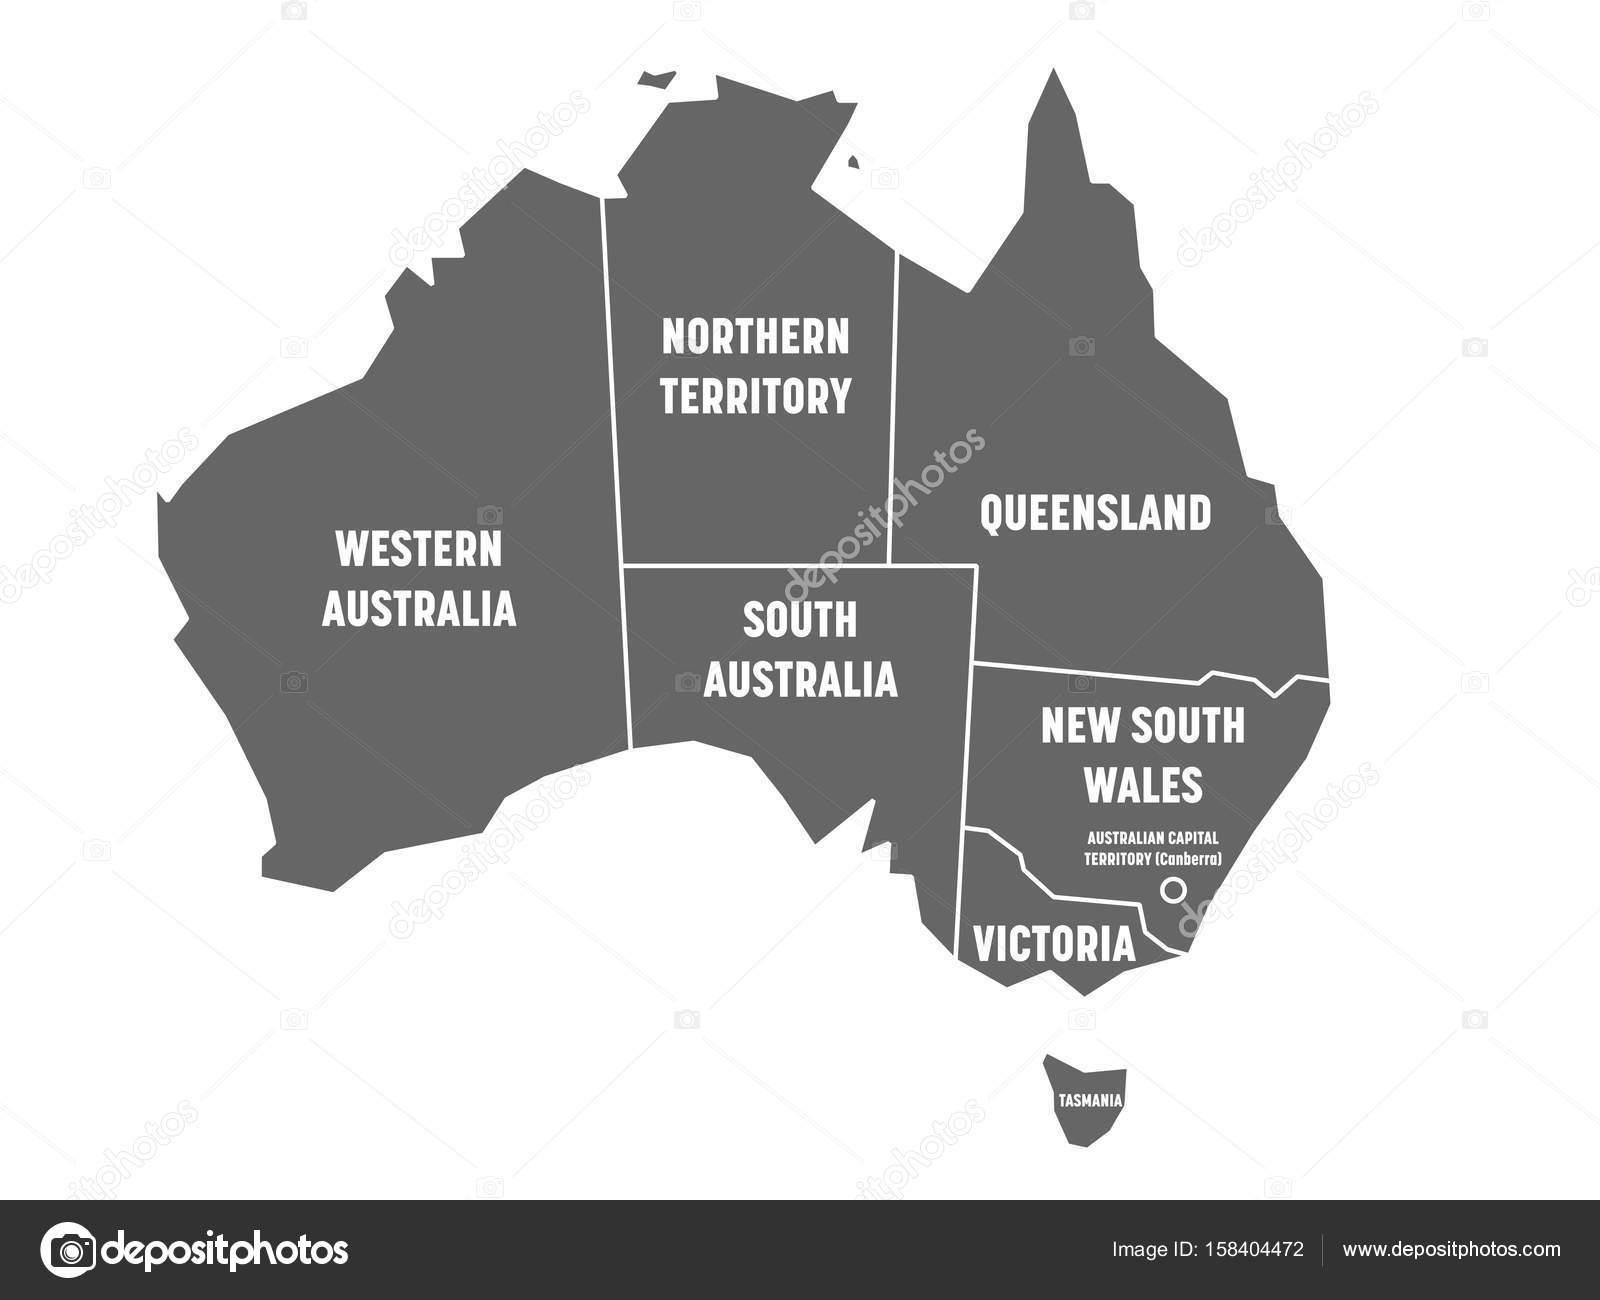 Australia Map And States.Simplified Map Of Australia Divided Into States And Territories